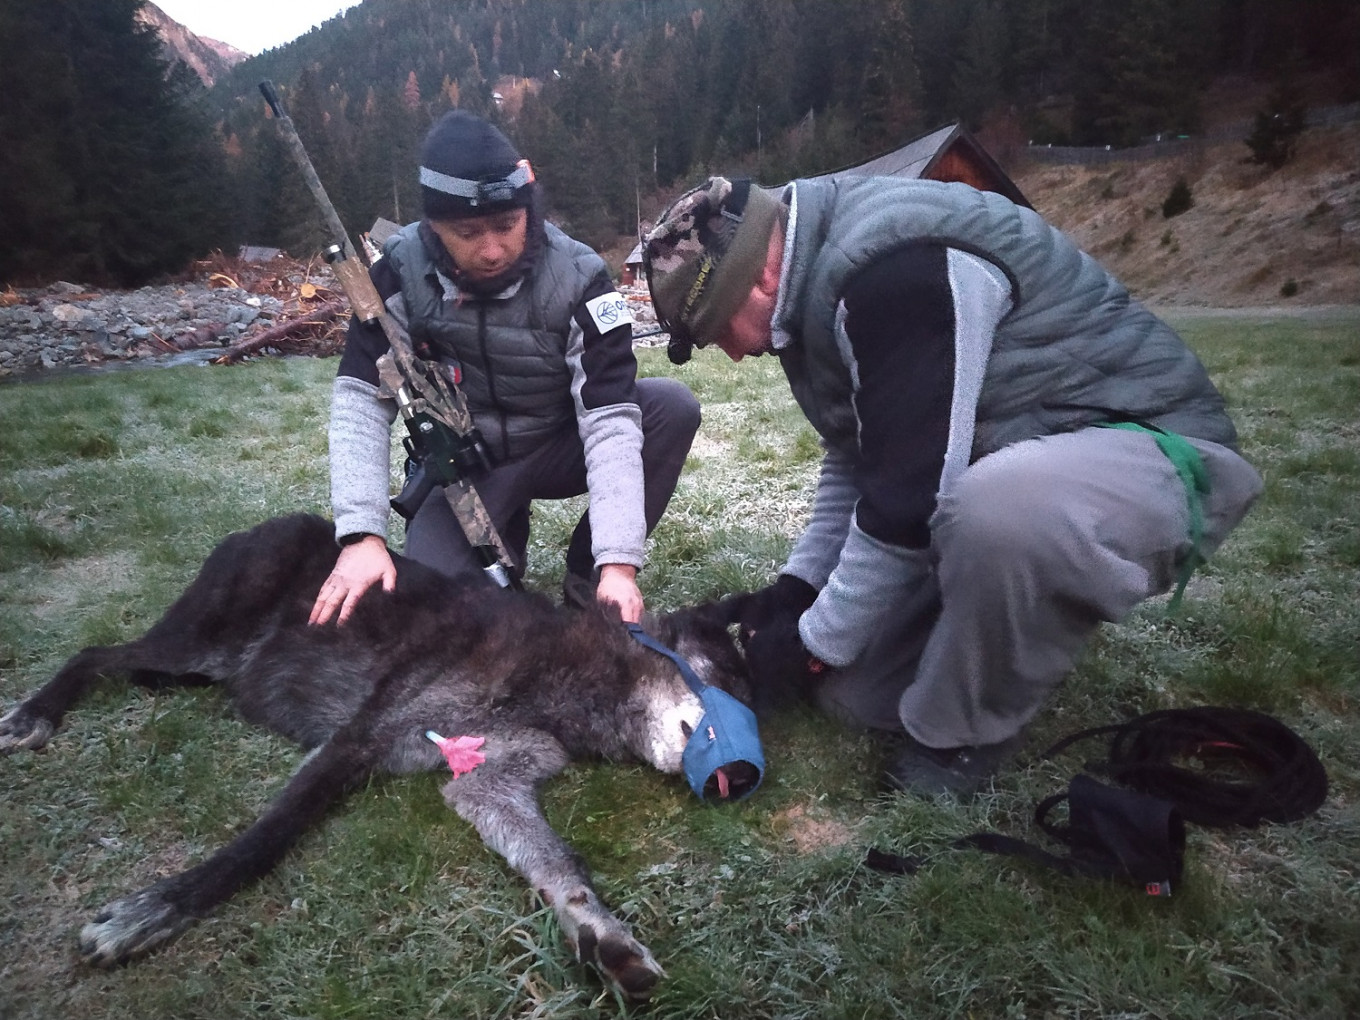 Rangers catch escaped Canadian wolf in France